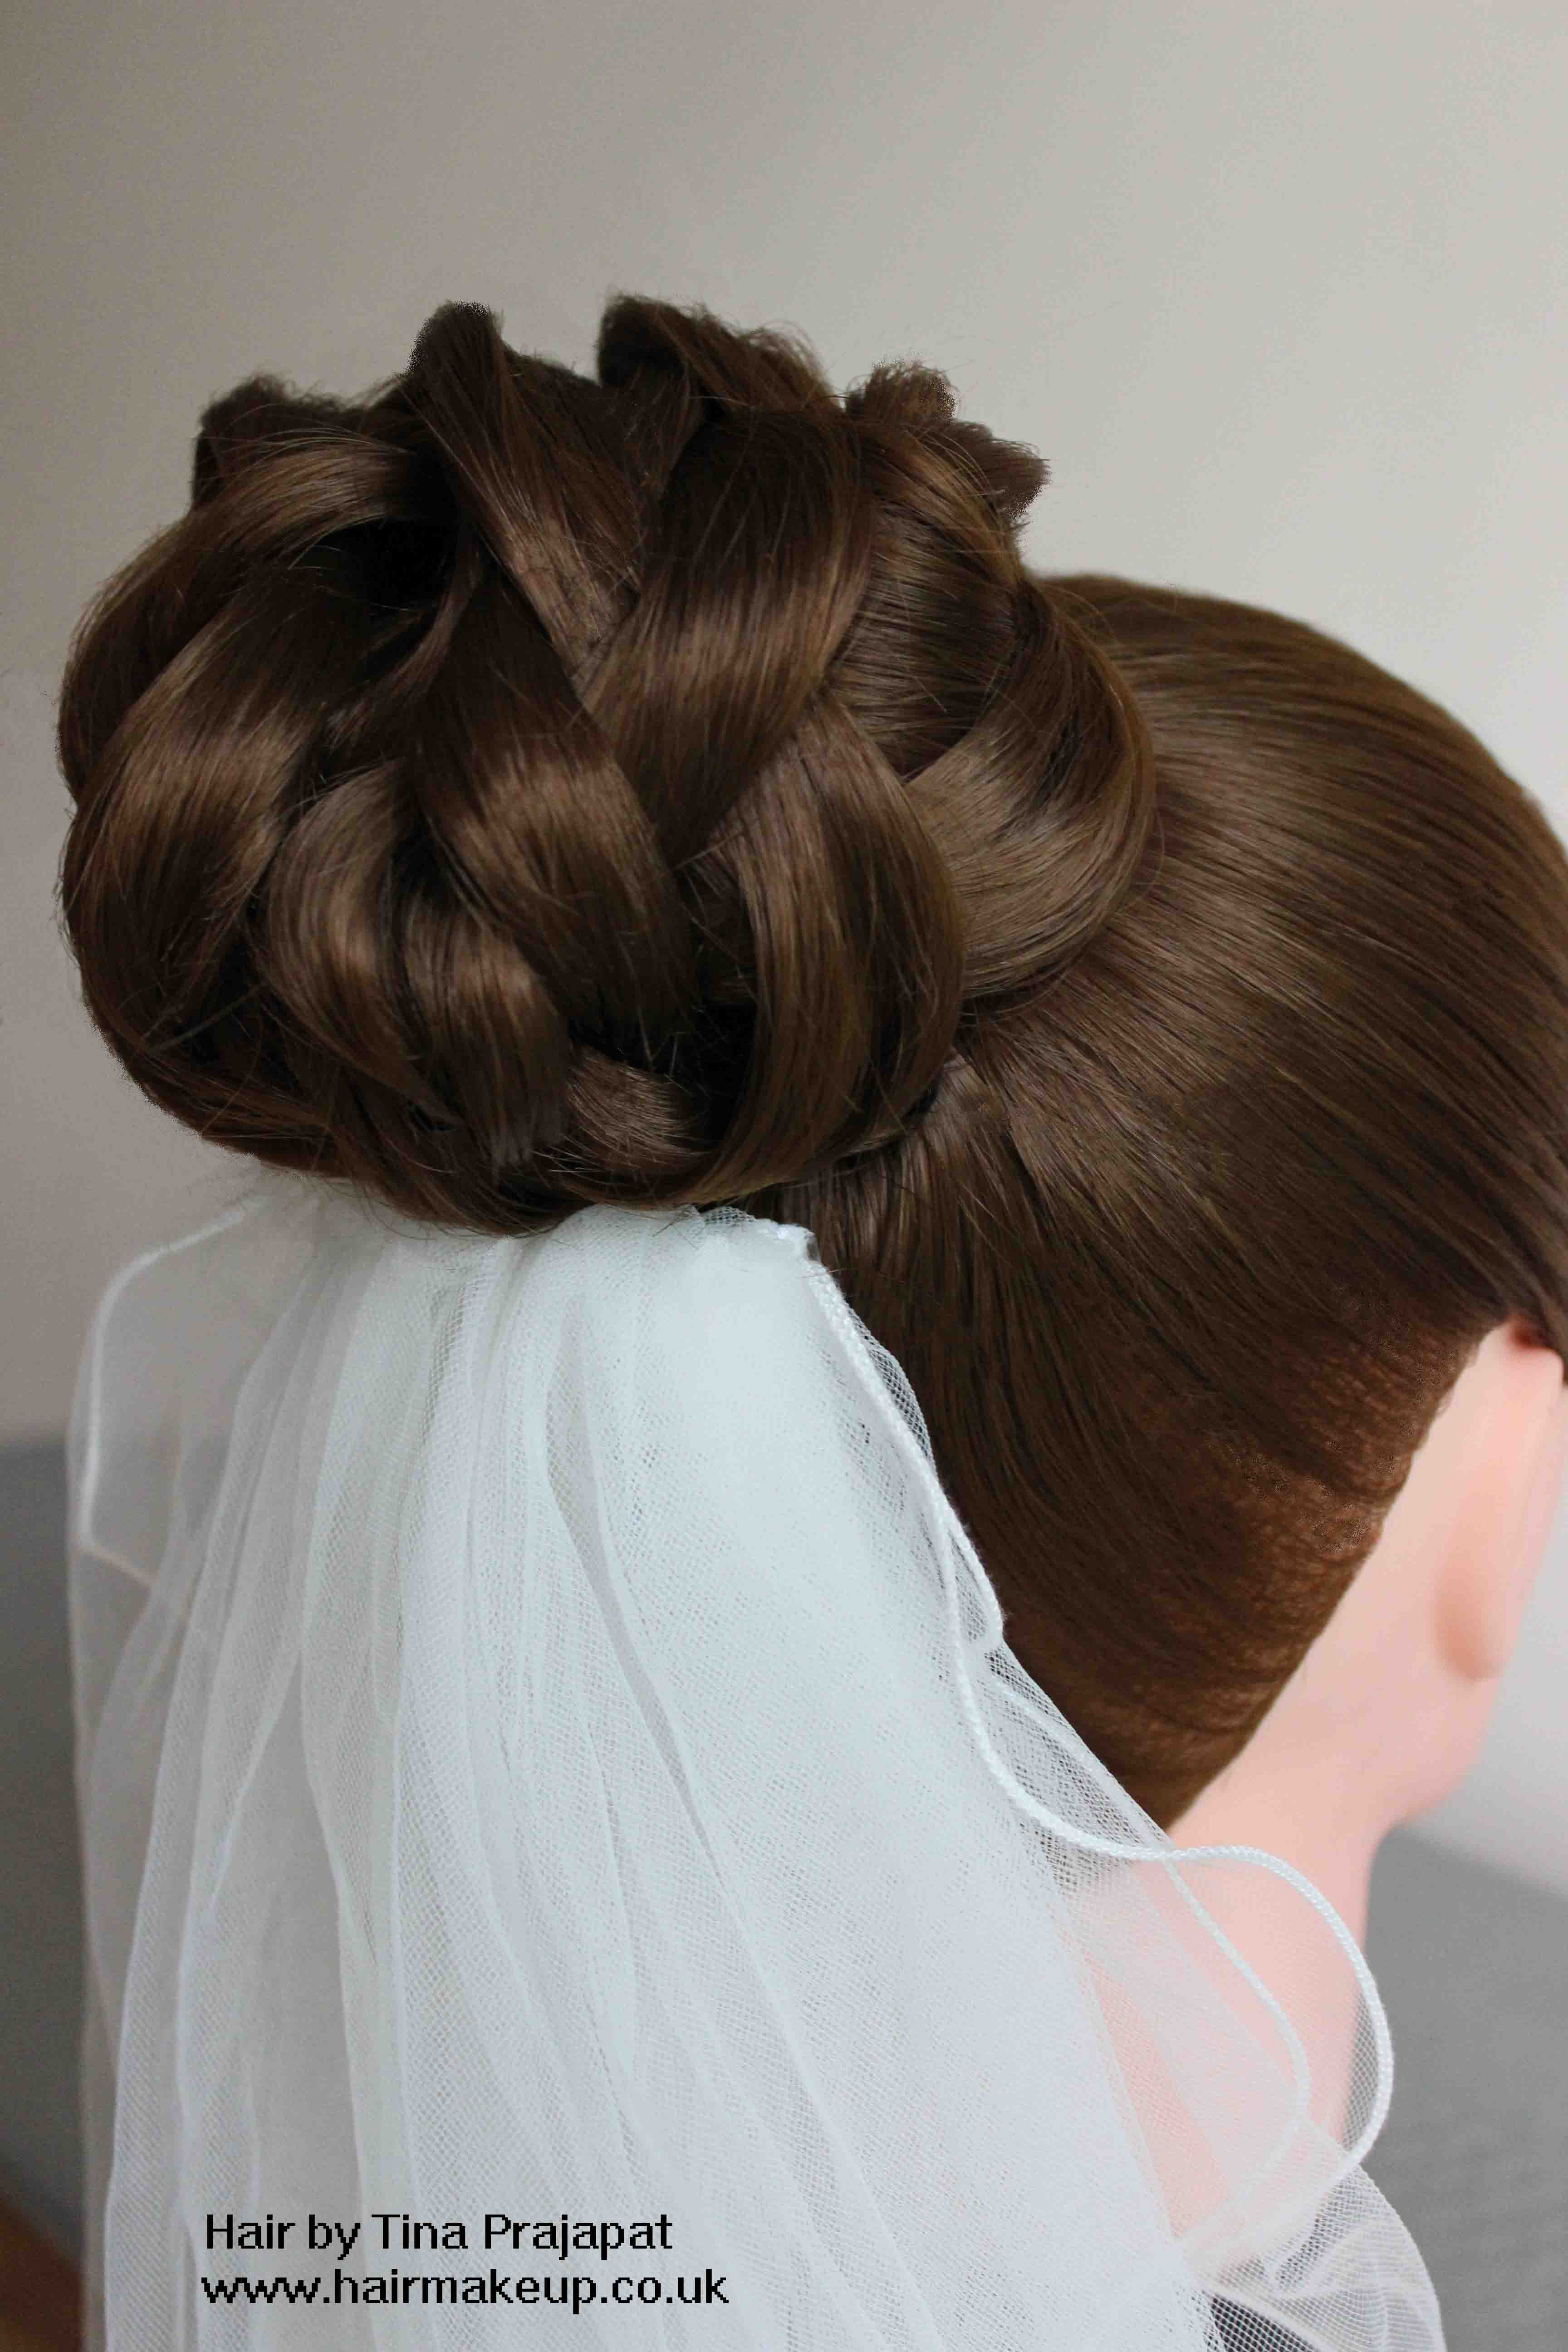 Hair Up Ideas For Brides And Special Occasions